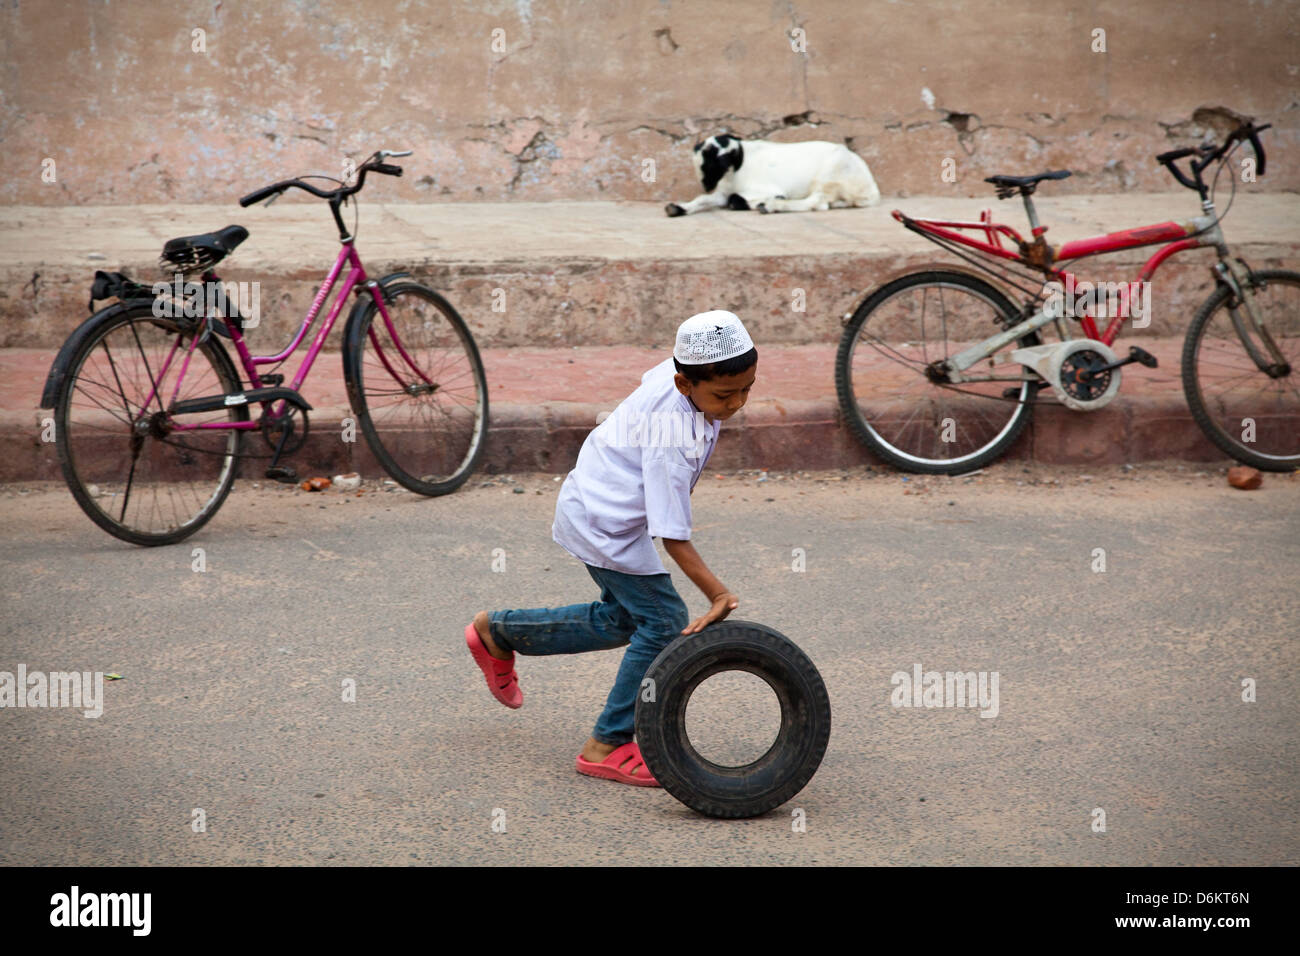 An Indian boy plays with a tyre, Ahmedabad, India - Stock Image